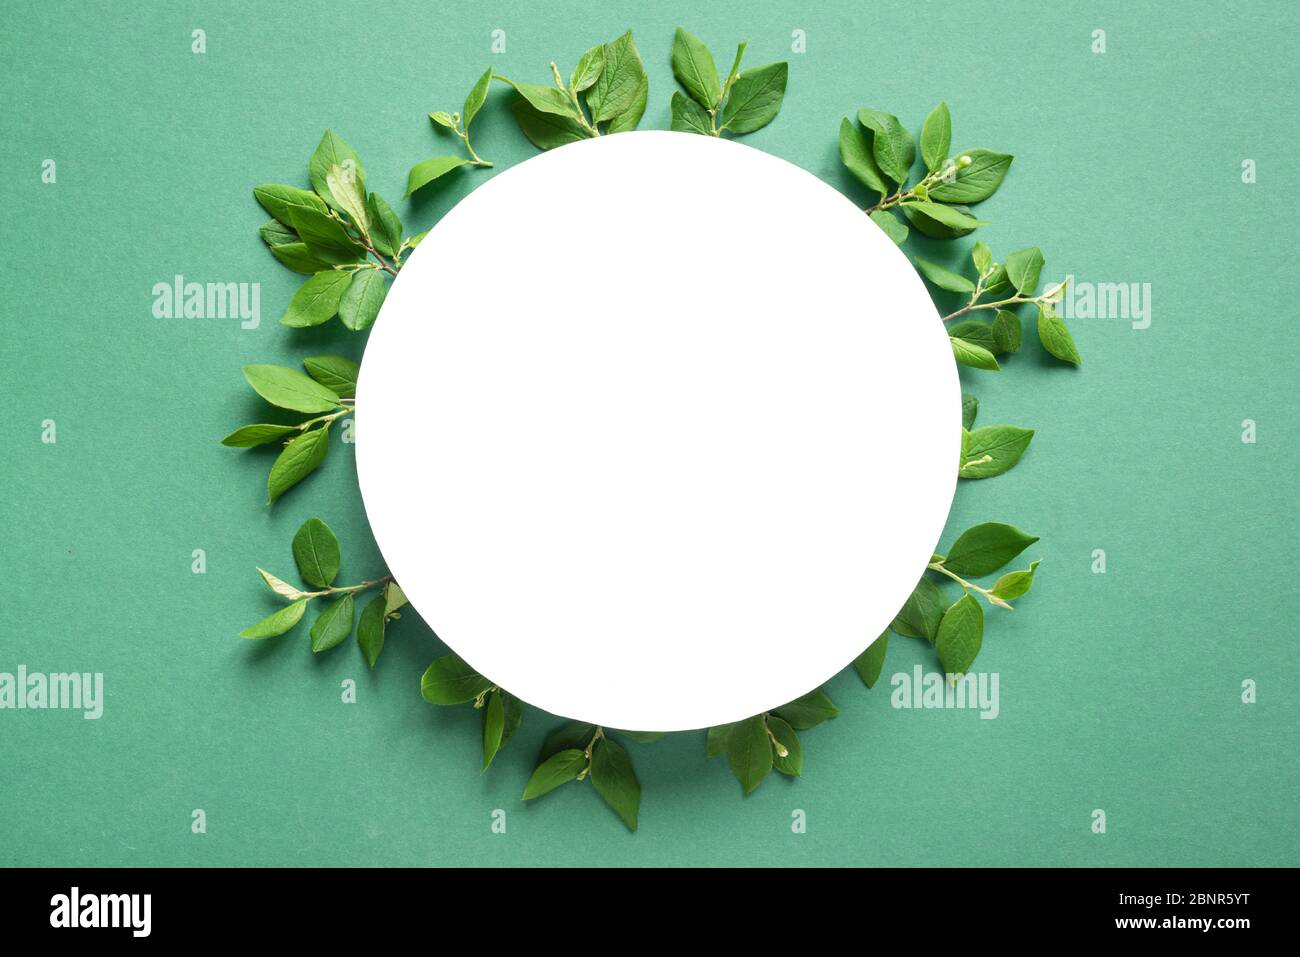 Creative layout made of green leaves, spring twigs on trendy green or mint background. Green leaves frame, flat lay, white round copy space. Summer or Stock Photo